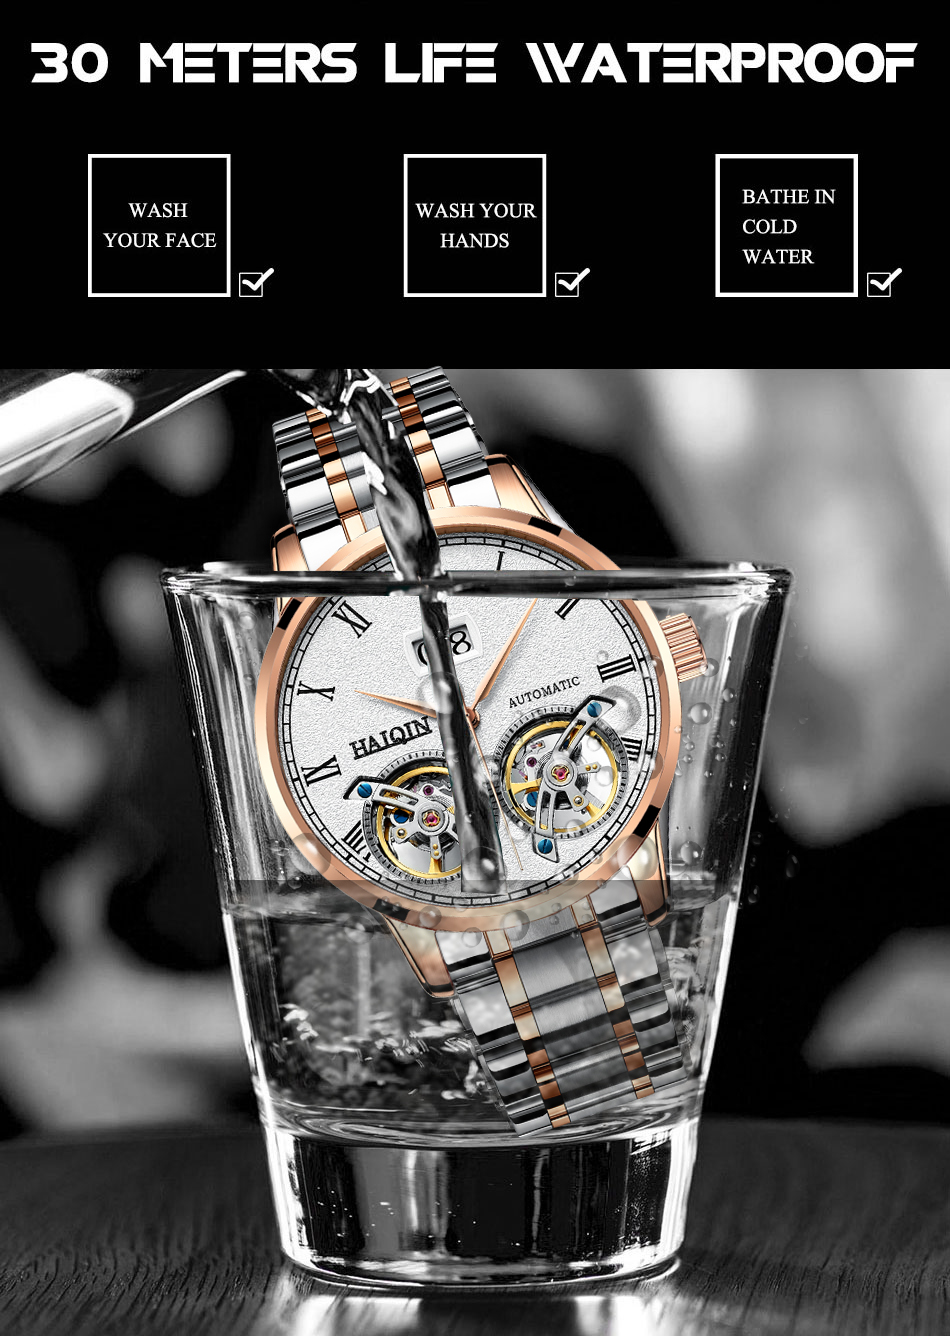 HTB1TjuZef1H3KVjSZFBq6zSMXXar HAIQIN Men's watches Mens Watches top brand luxury Automatic mechanical sport watch men wirstwatch Tourbillon Reloj hombres 2018